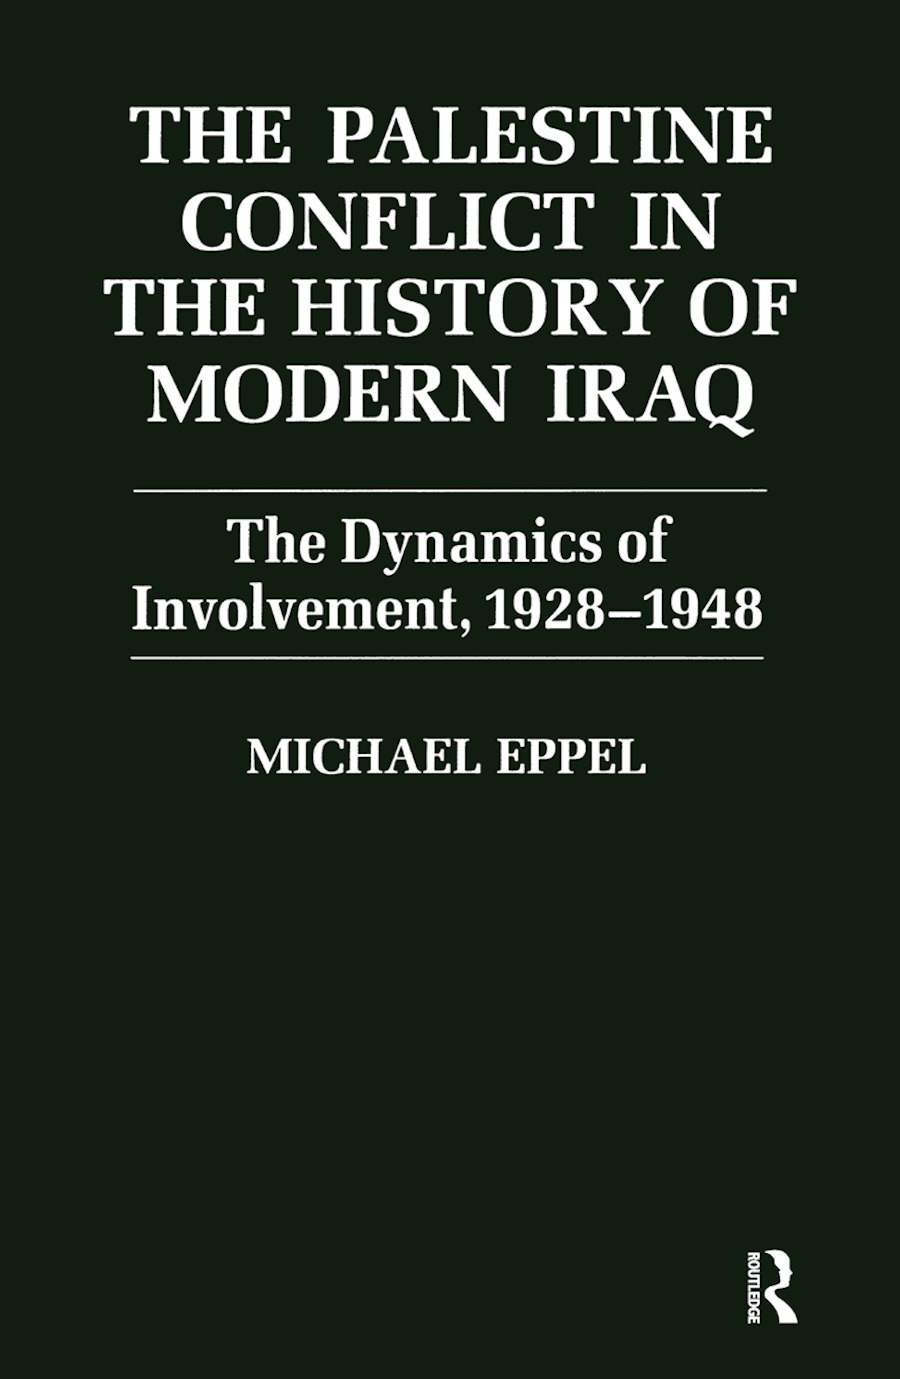 The Palestine Conflict in the History of Modern Iraq